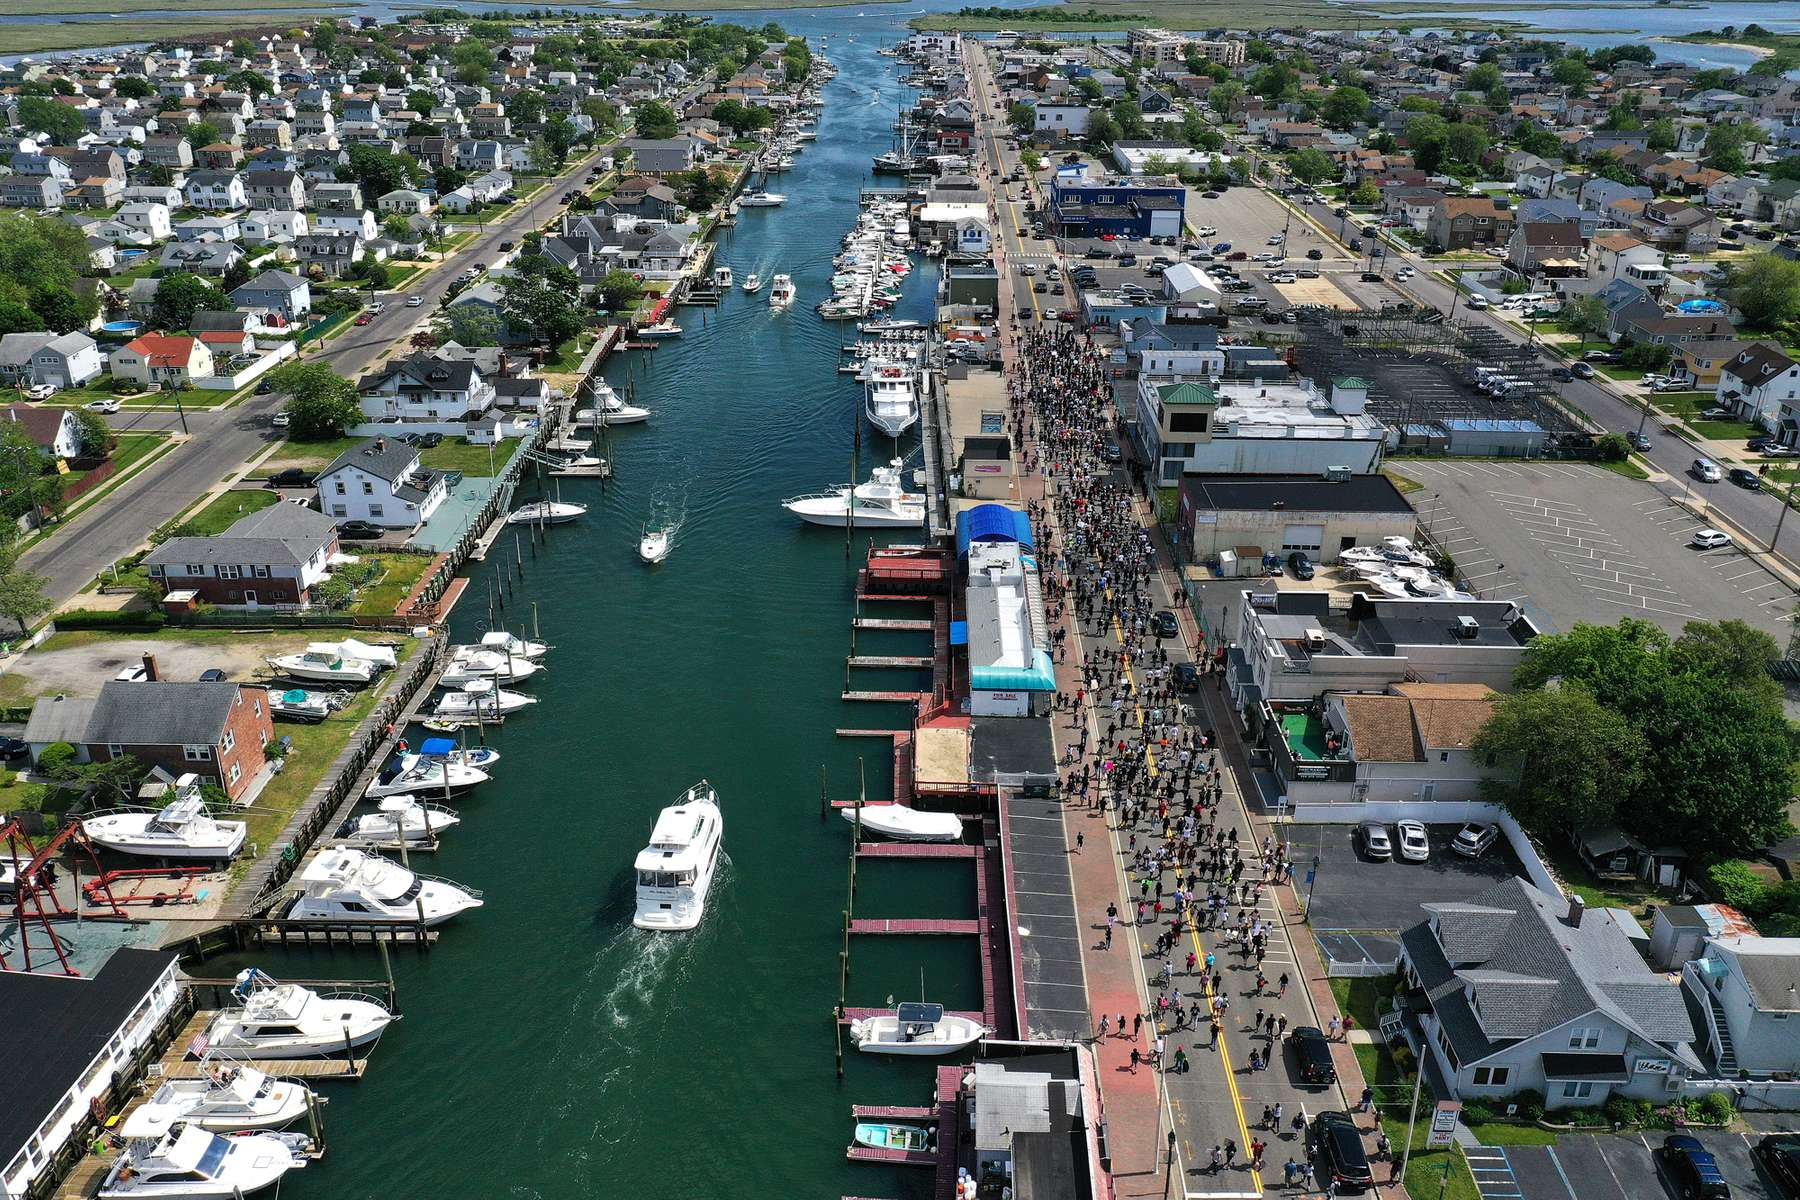 n aerial view of Protesters marching along the Nautical Mile on June 07, 2020 in Freeport, New York.  Minneapolis Police officer Derek Chauvin was filmed kneeling on George Floyd's neck, who was later pronounced dead at a local hospital. Chauvin has been charged with second-degree murder and three other officers who participated in the arrest have been charged with aiding and abetting second-degree murder. Floyd's death, the most recent in a series of deaths of black Americans by the police, has set off days and nights of protests across the country.